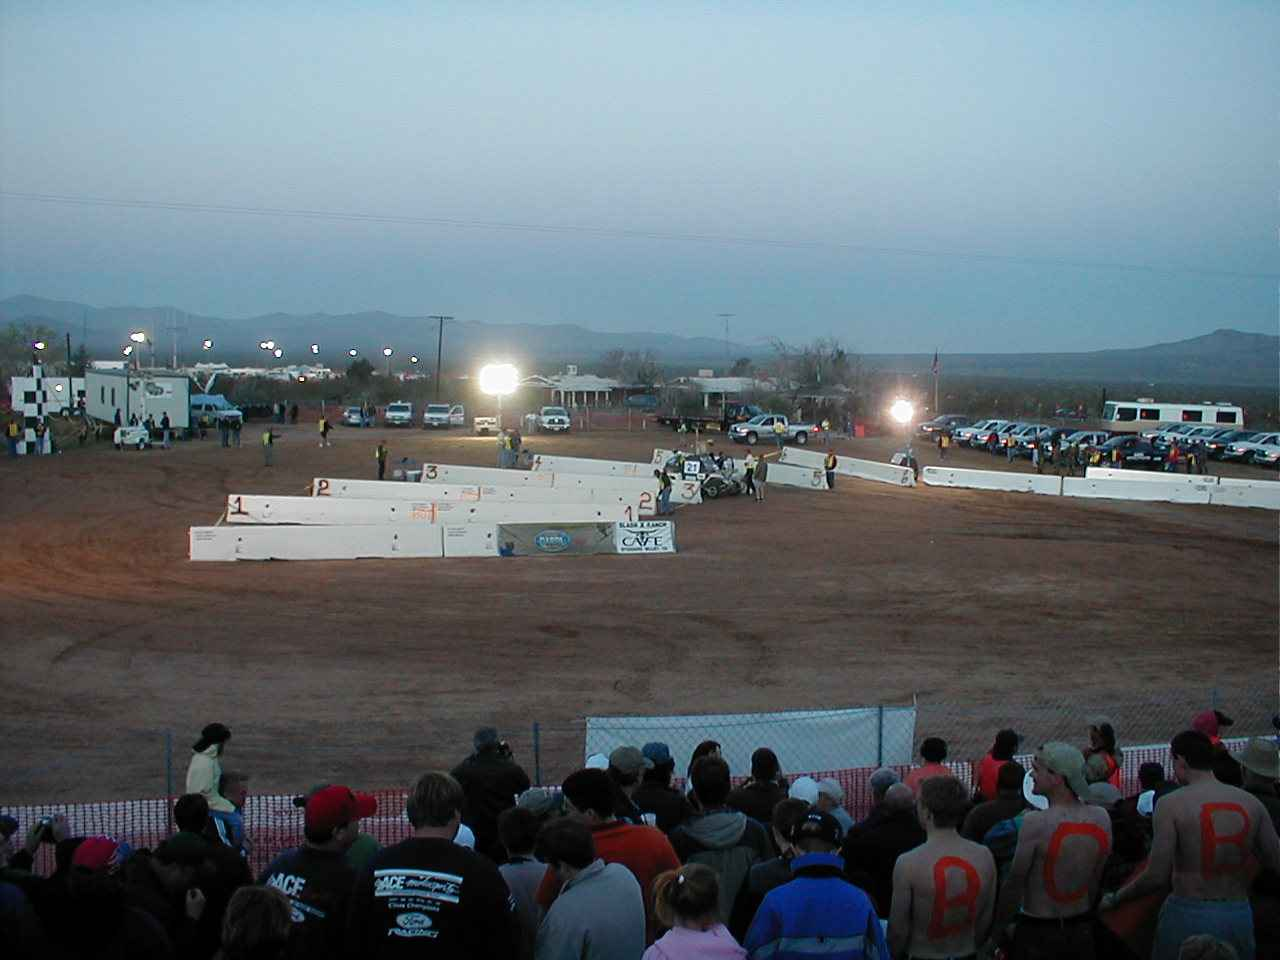 DARPA's robot race got underway in the pre-dawn hours. Starting chutes were